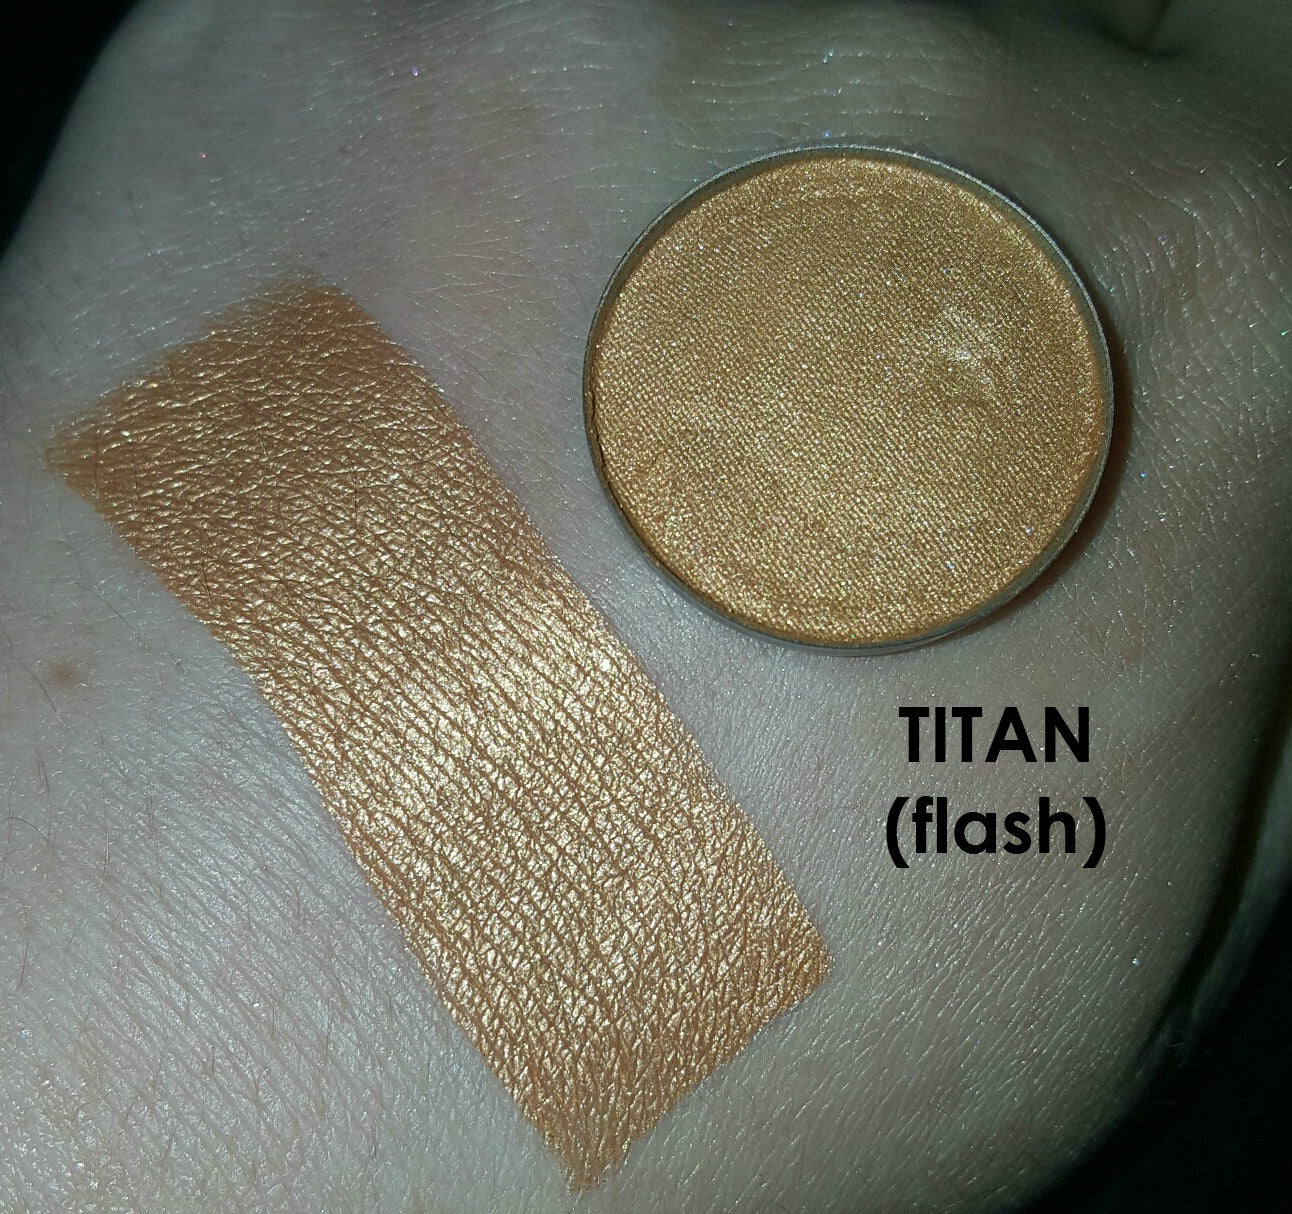 shade beauty, eyeshadow, vegan makeup, cruelty free makeup, swatches, shimmery eyeshadow, sparkly eyeshadow, metallic eyeshadow, neutral eyeshadow, nude eyeshadow, indie makeup, artisan makeup, titan, titan pressed eyeshadow, orange eyeshadow, bronze eyeshadow, brassy eyeshadow